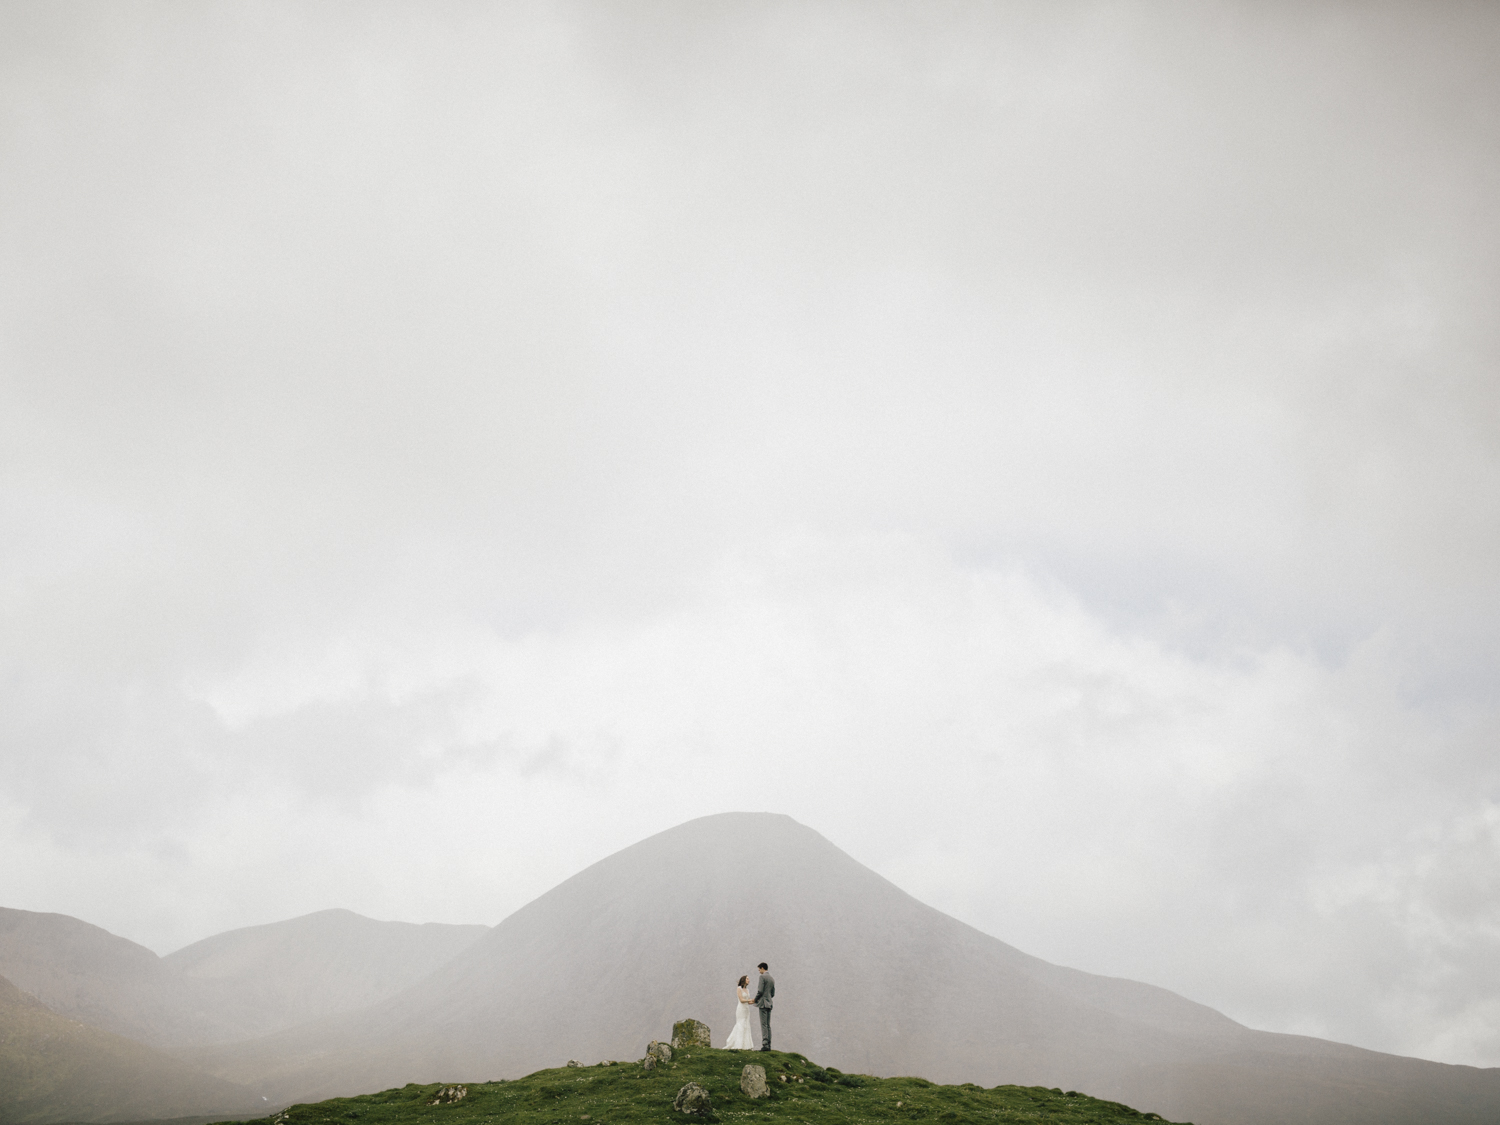 capyture-wedding-photographer-destination-elopement-isle-skye-scotland-432